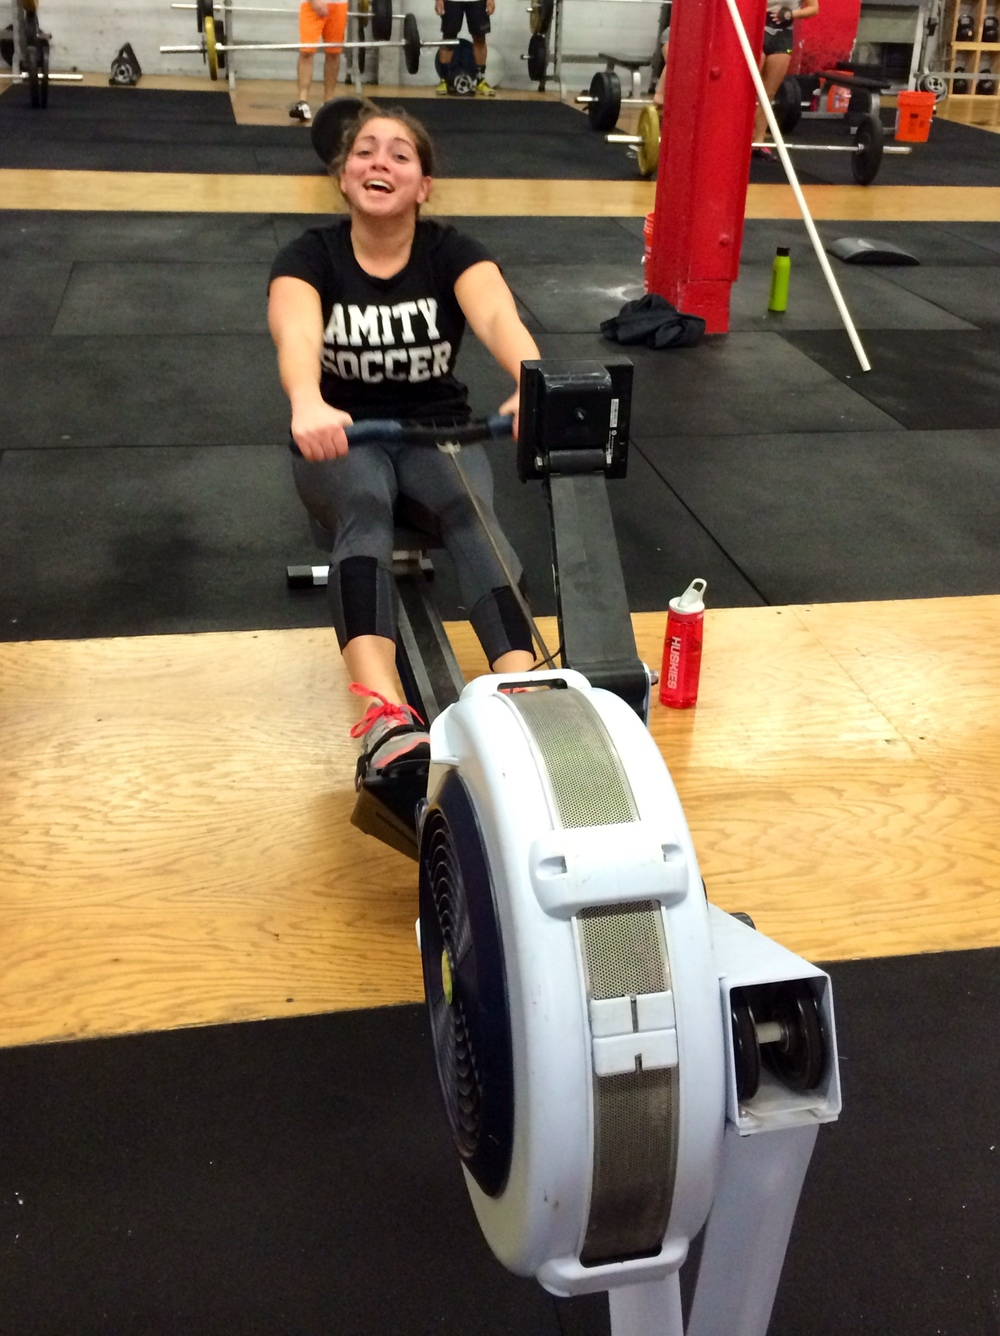 Someone is having way too much fun on the rower!